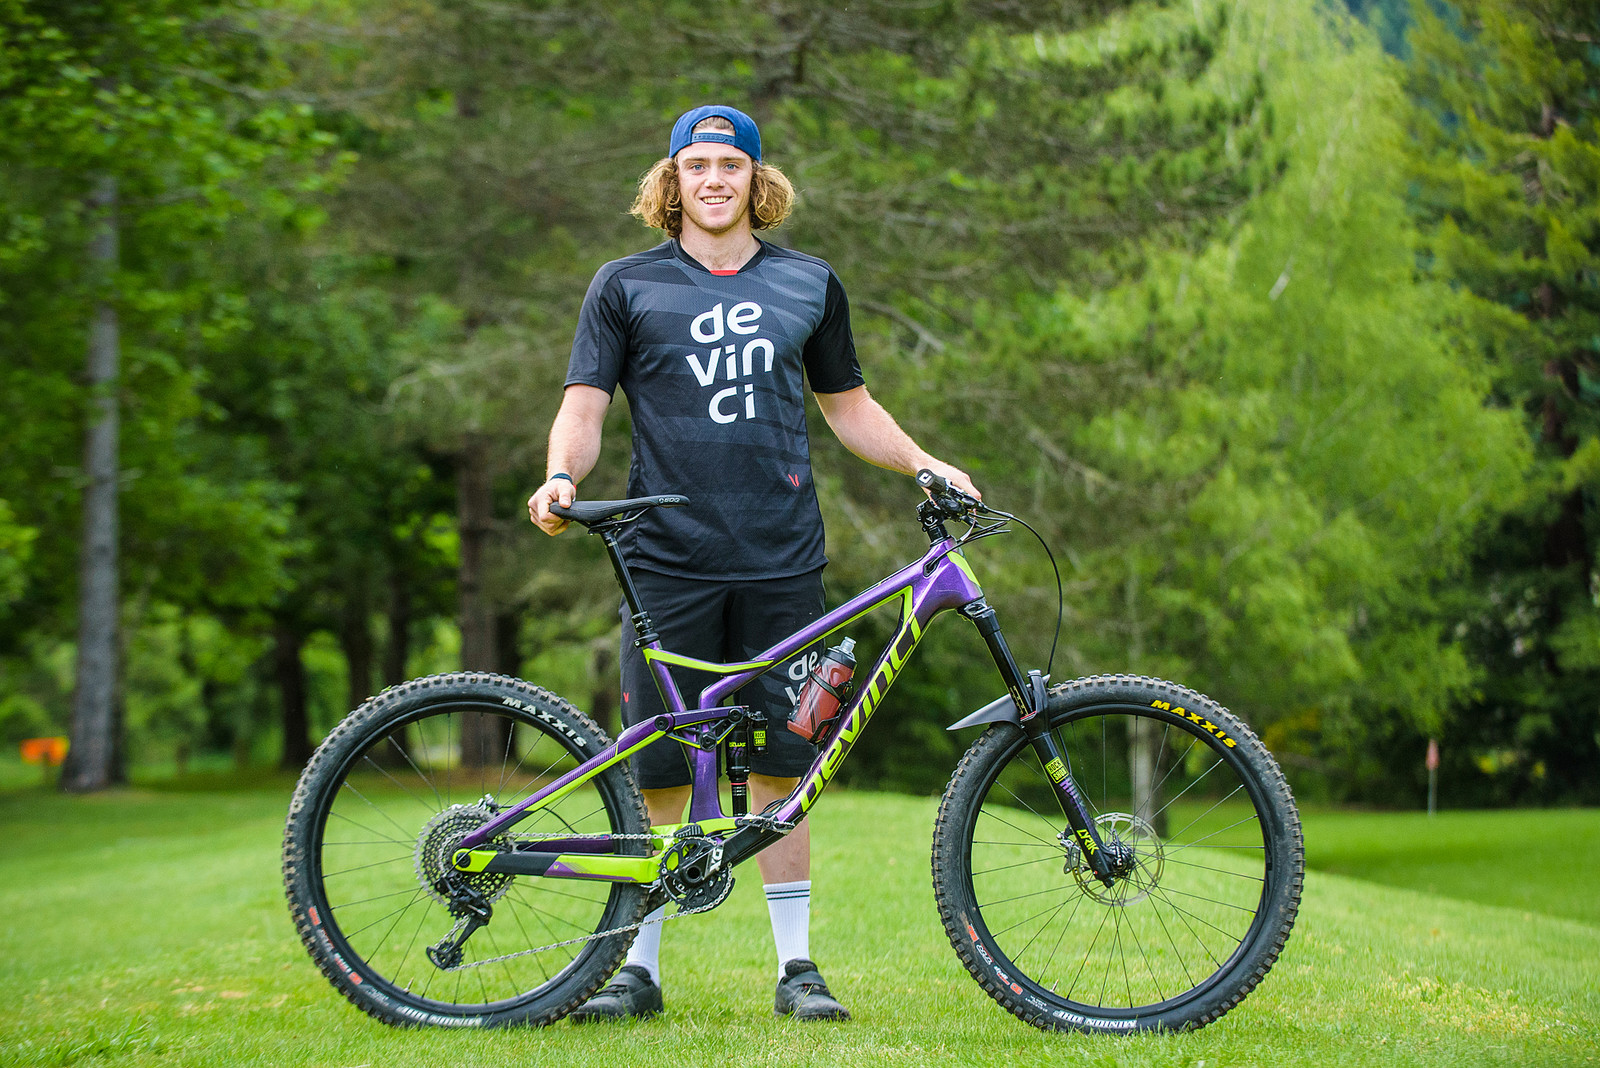 Pro Bike Check: Keegan Wright's Devinci Spartan Carbon - Pro Bike Check: Keegan Wright's Devinci Spartan Carbon - Mountain Biking Pictures - Vital MTB